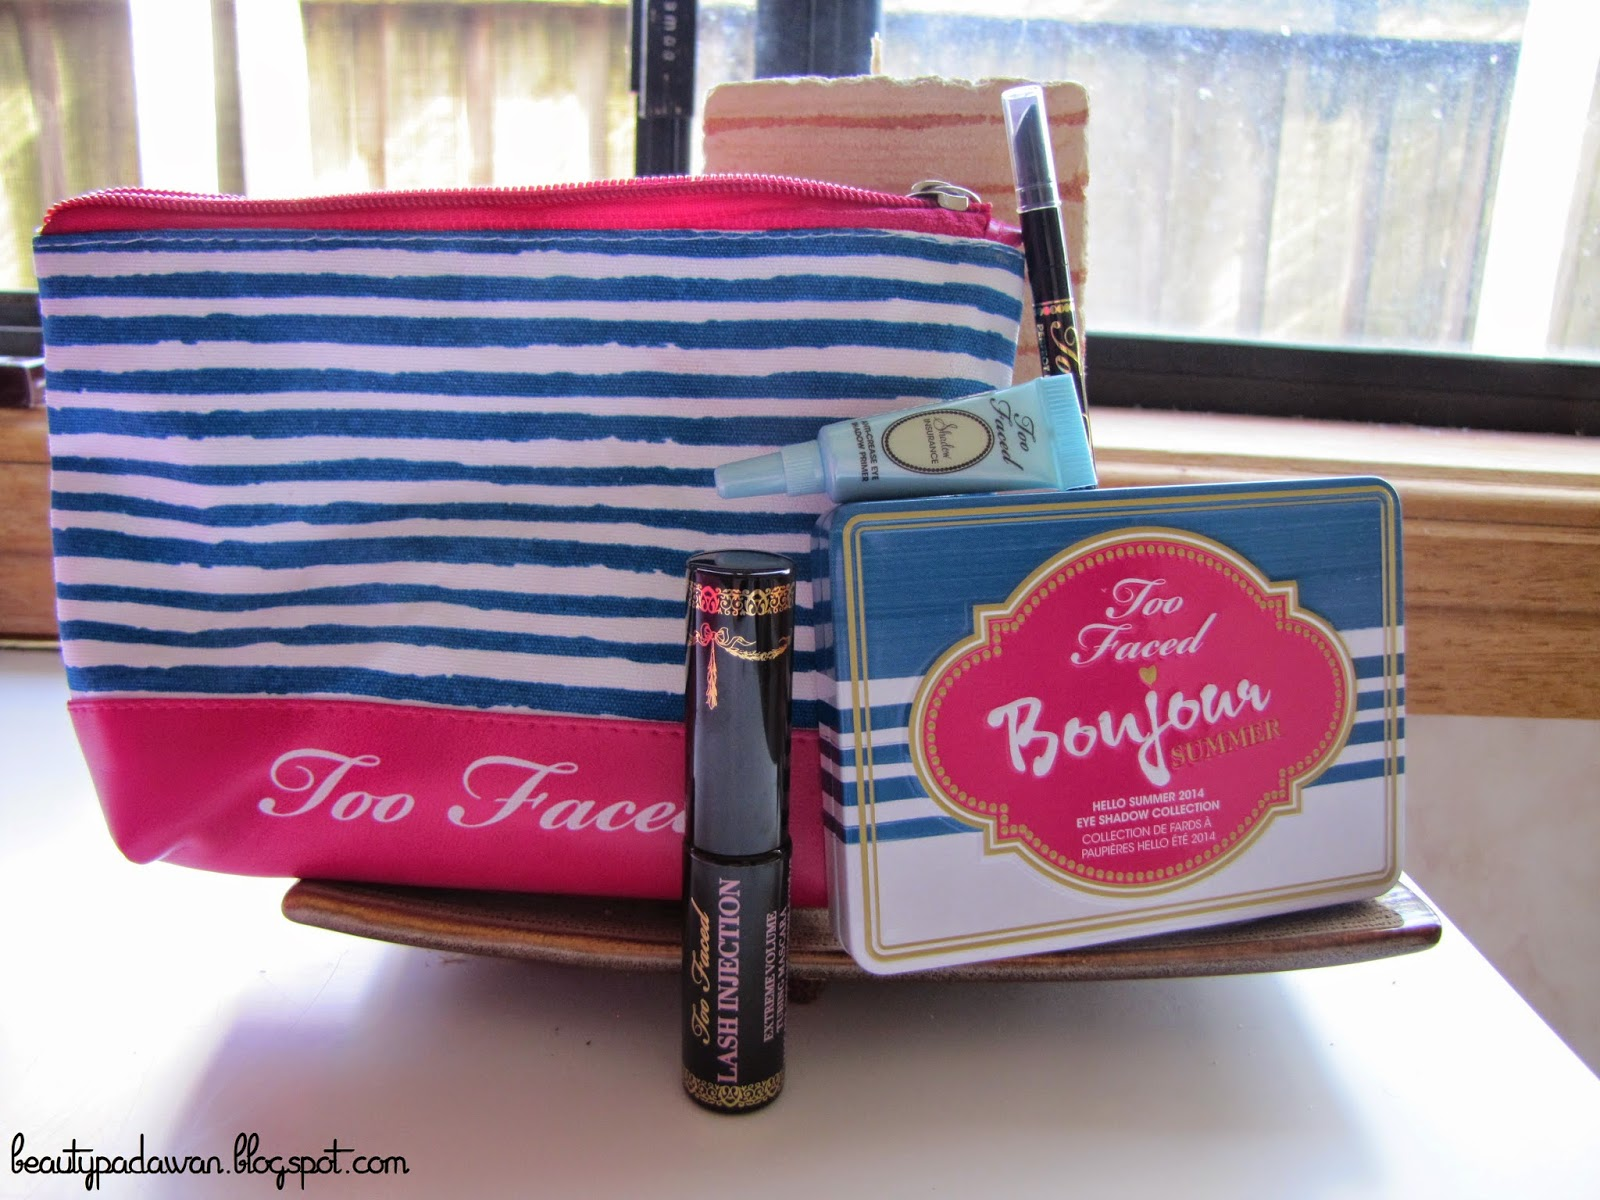 Too Faced Pardon My French Kit